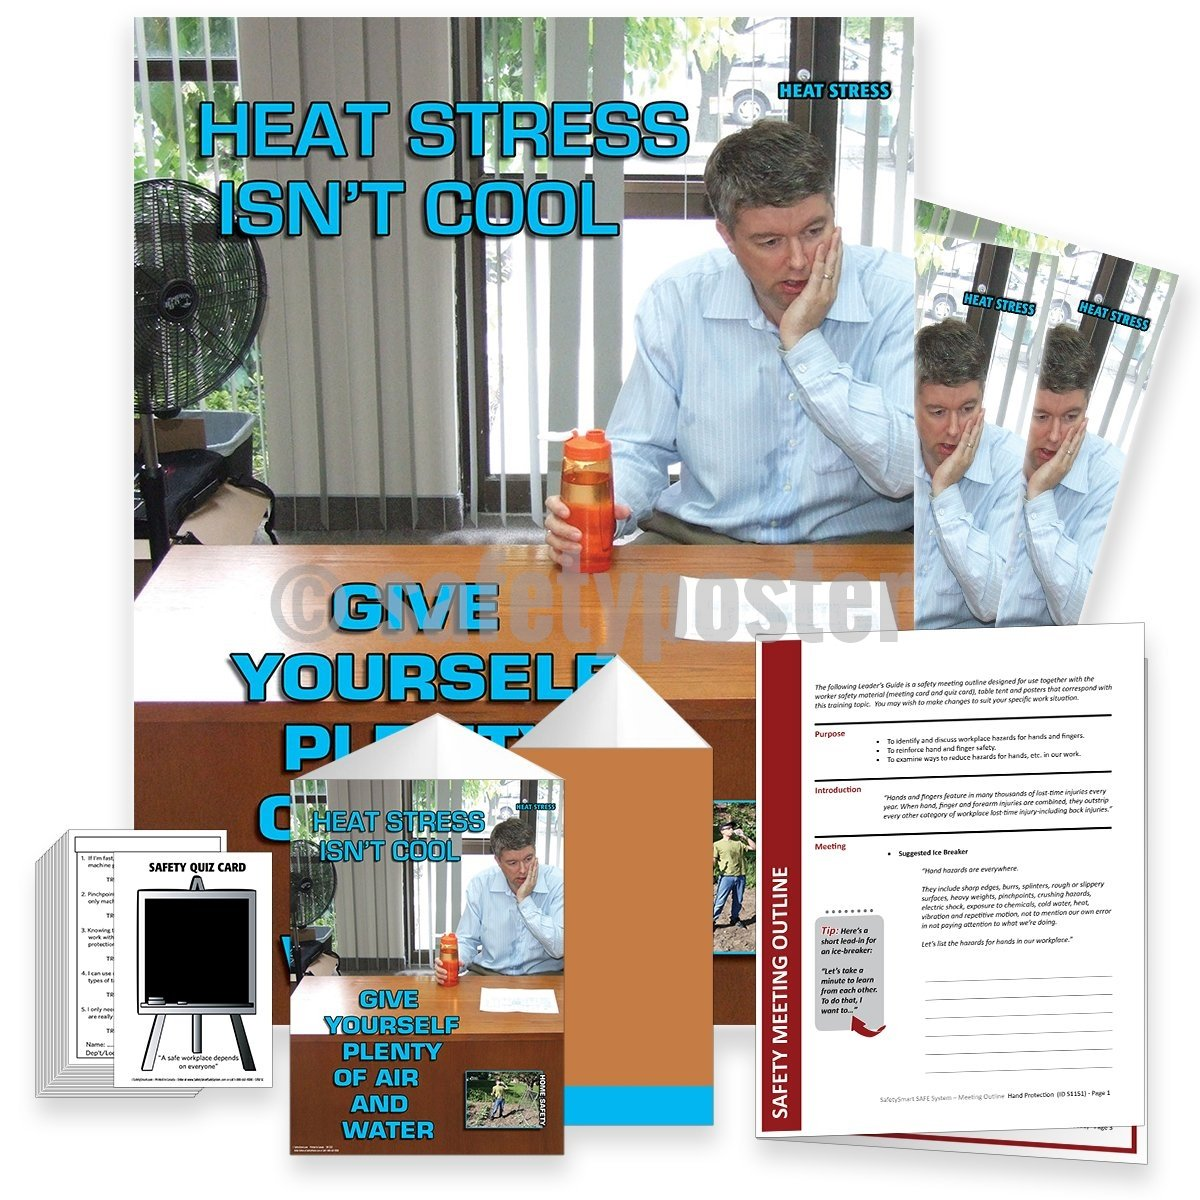 Safety Meeting Kit - Heat Stress Isnt Cool Home Kits